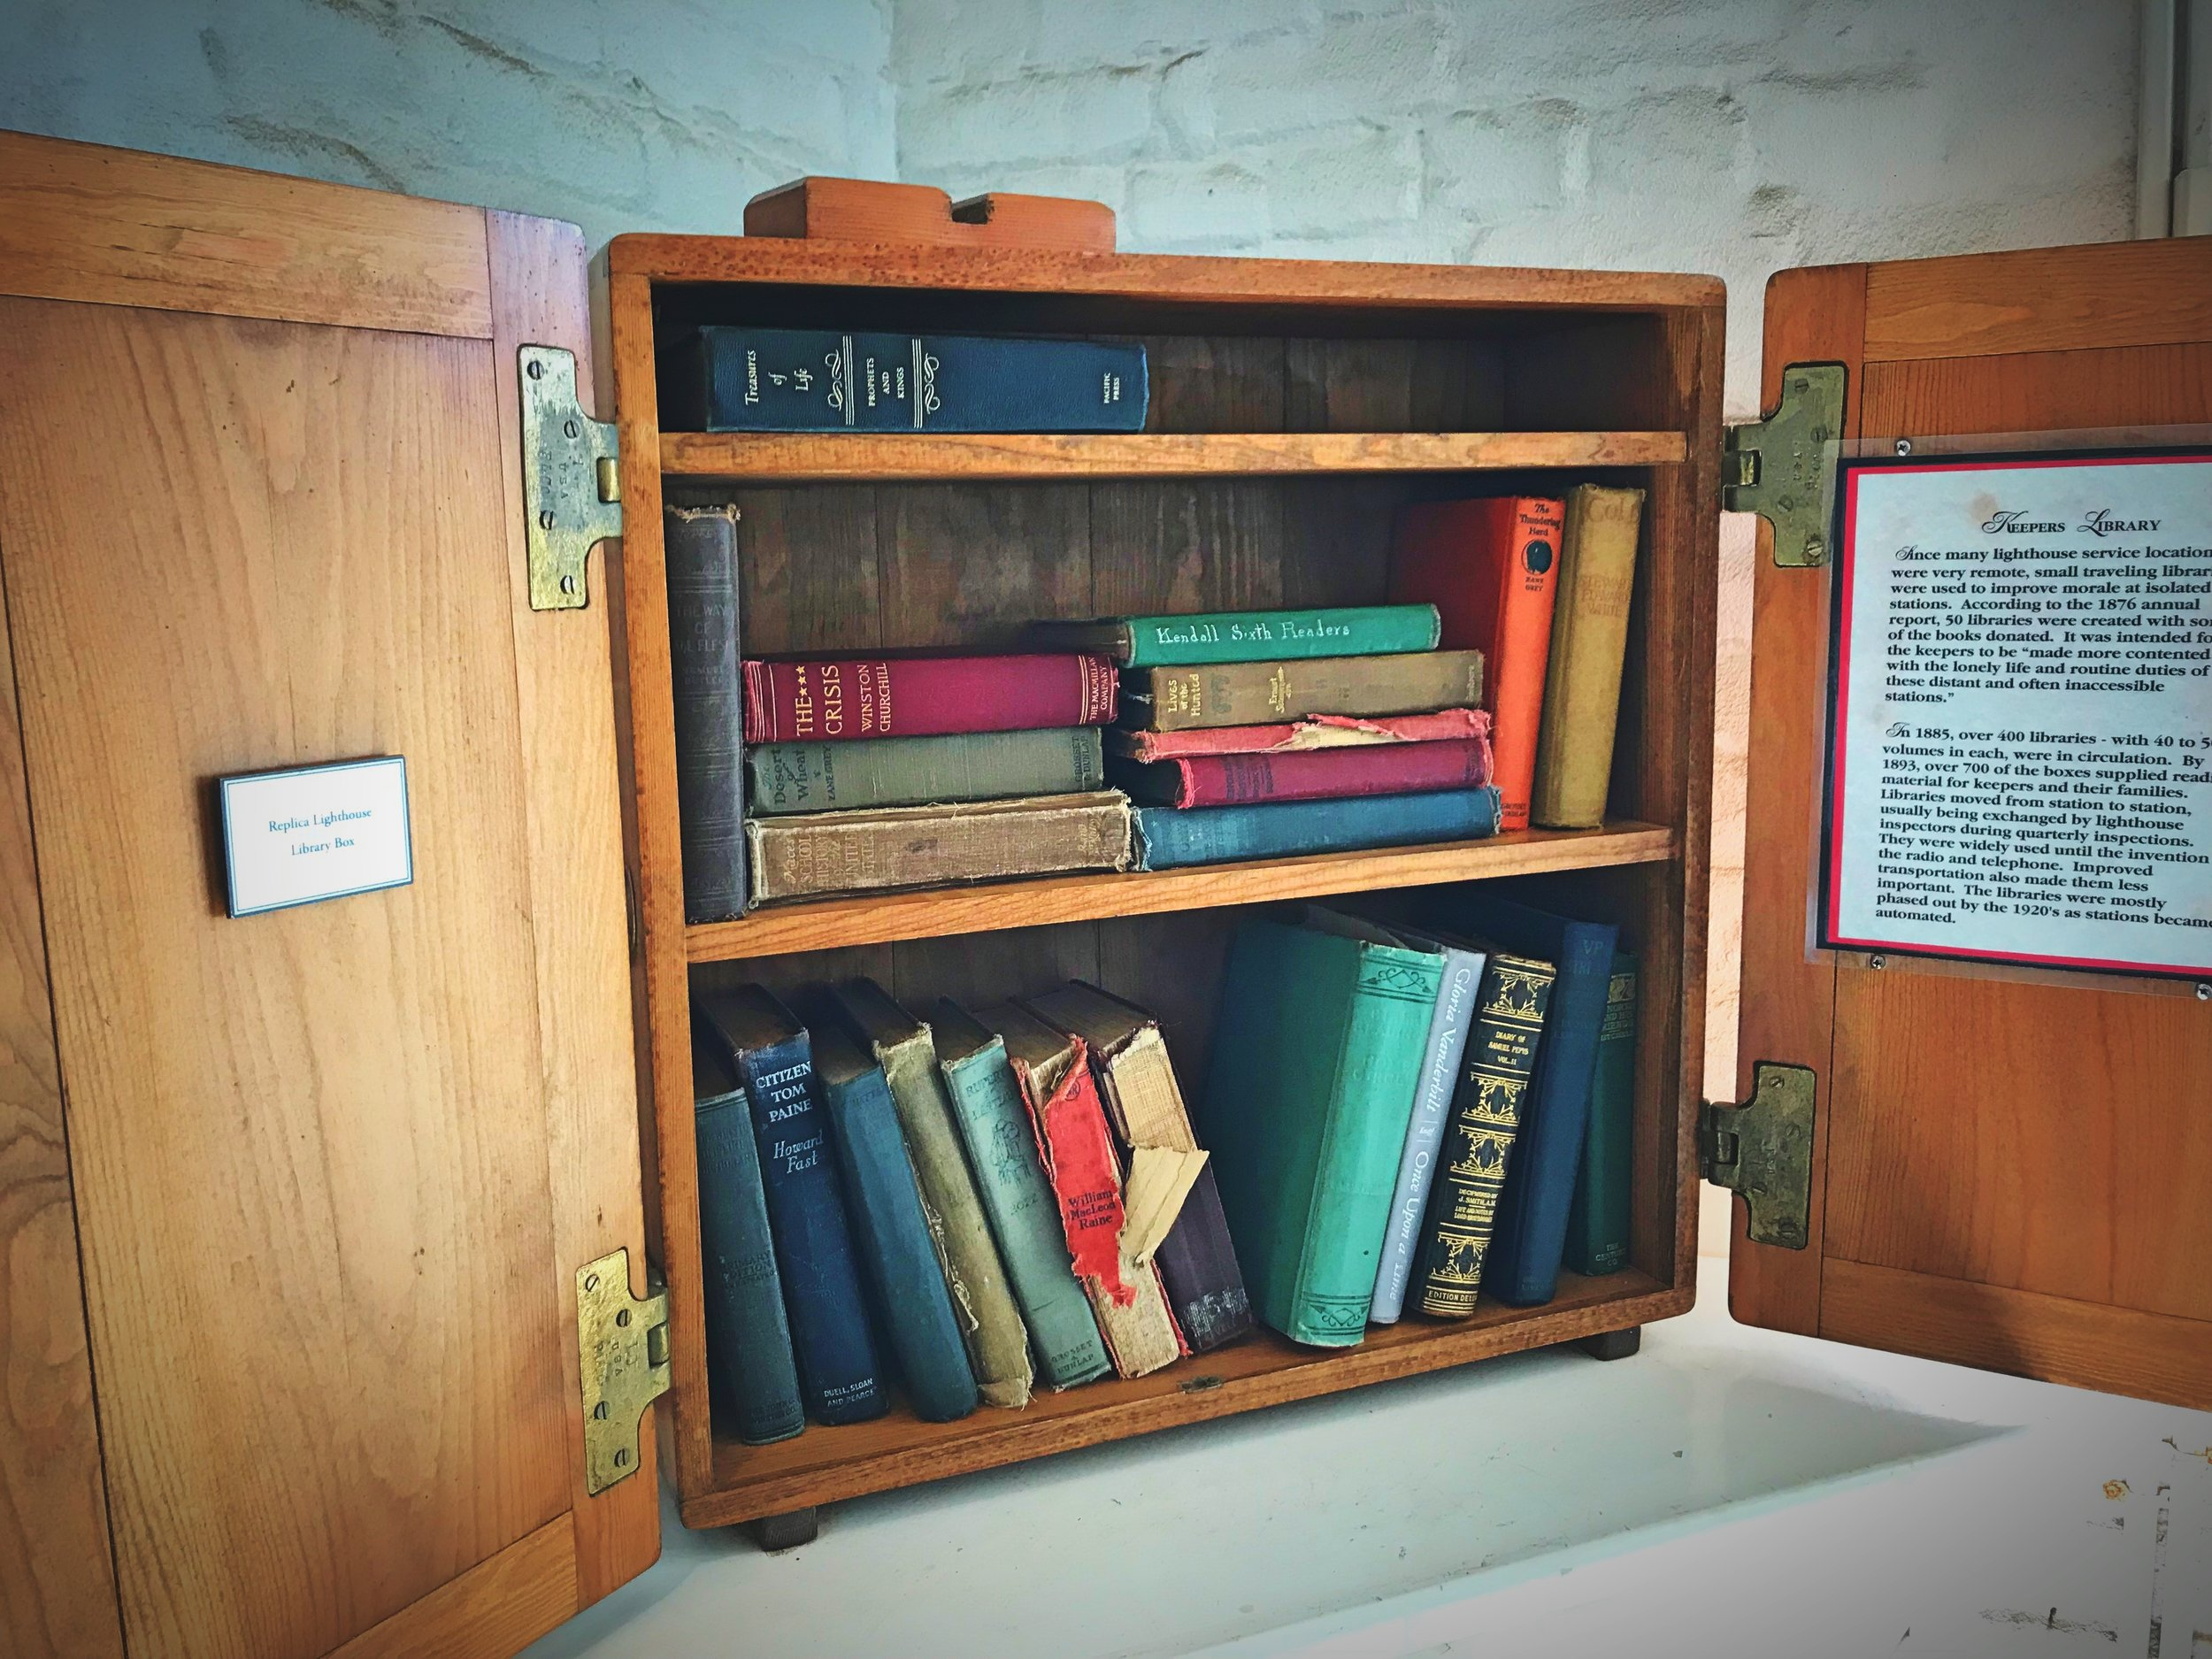 These keepers' libraries would be exchanged every few months between lighthouse keepers on the Oregon Coast.